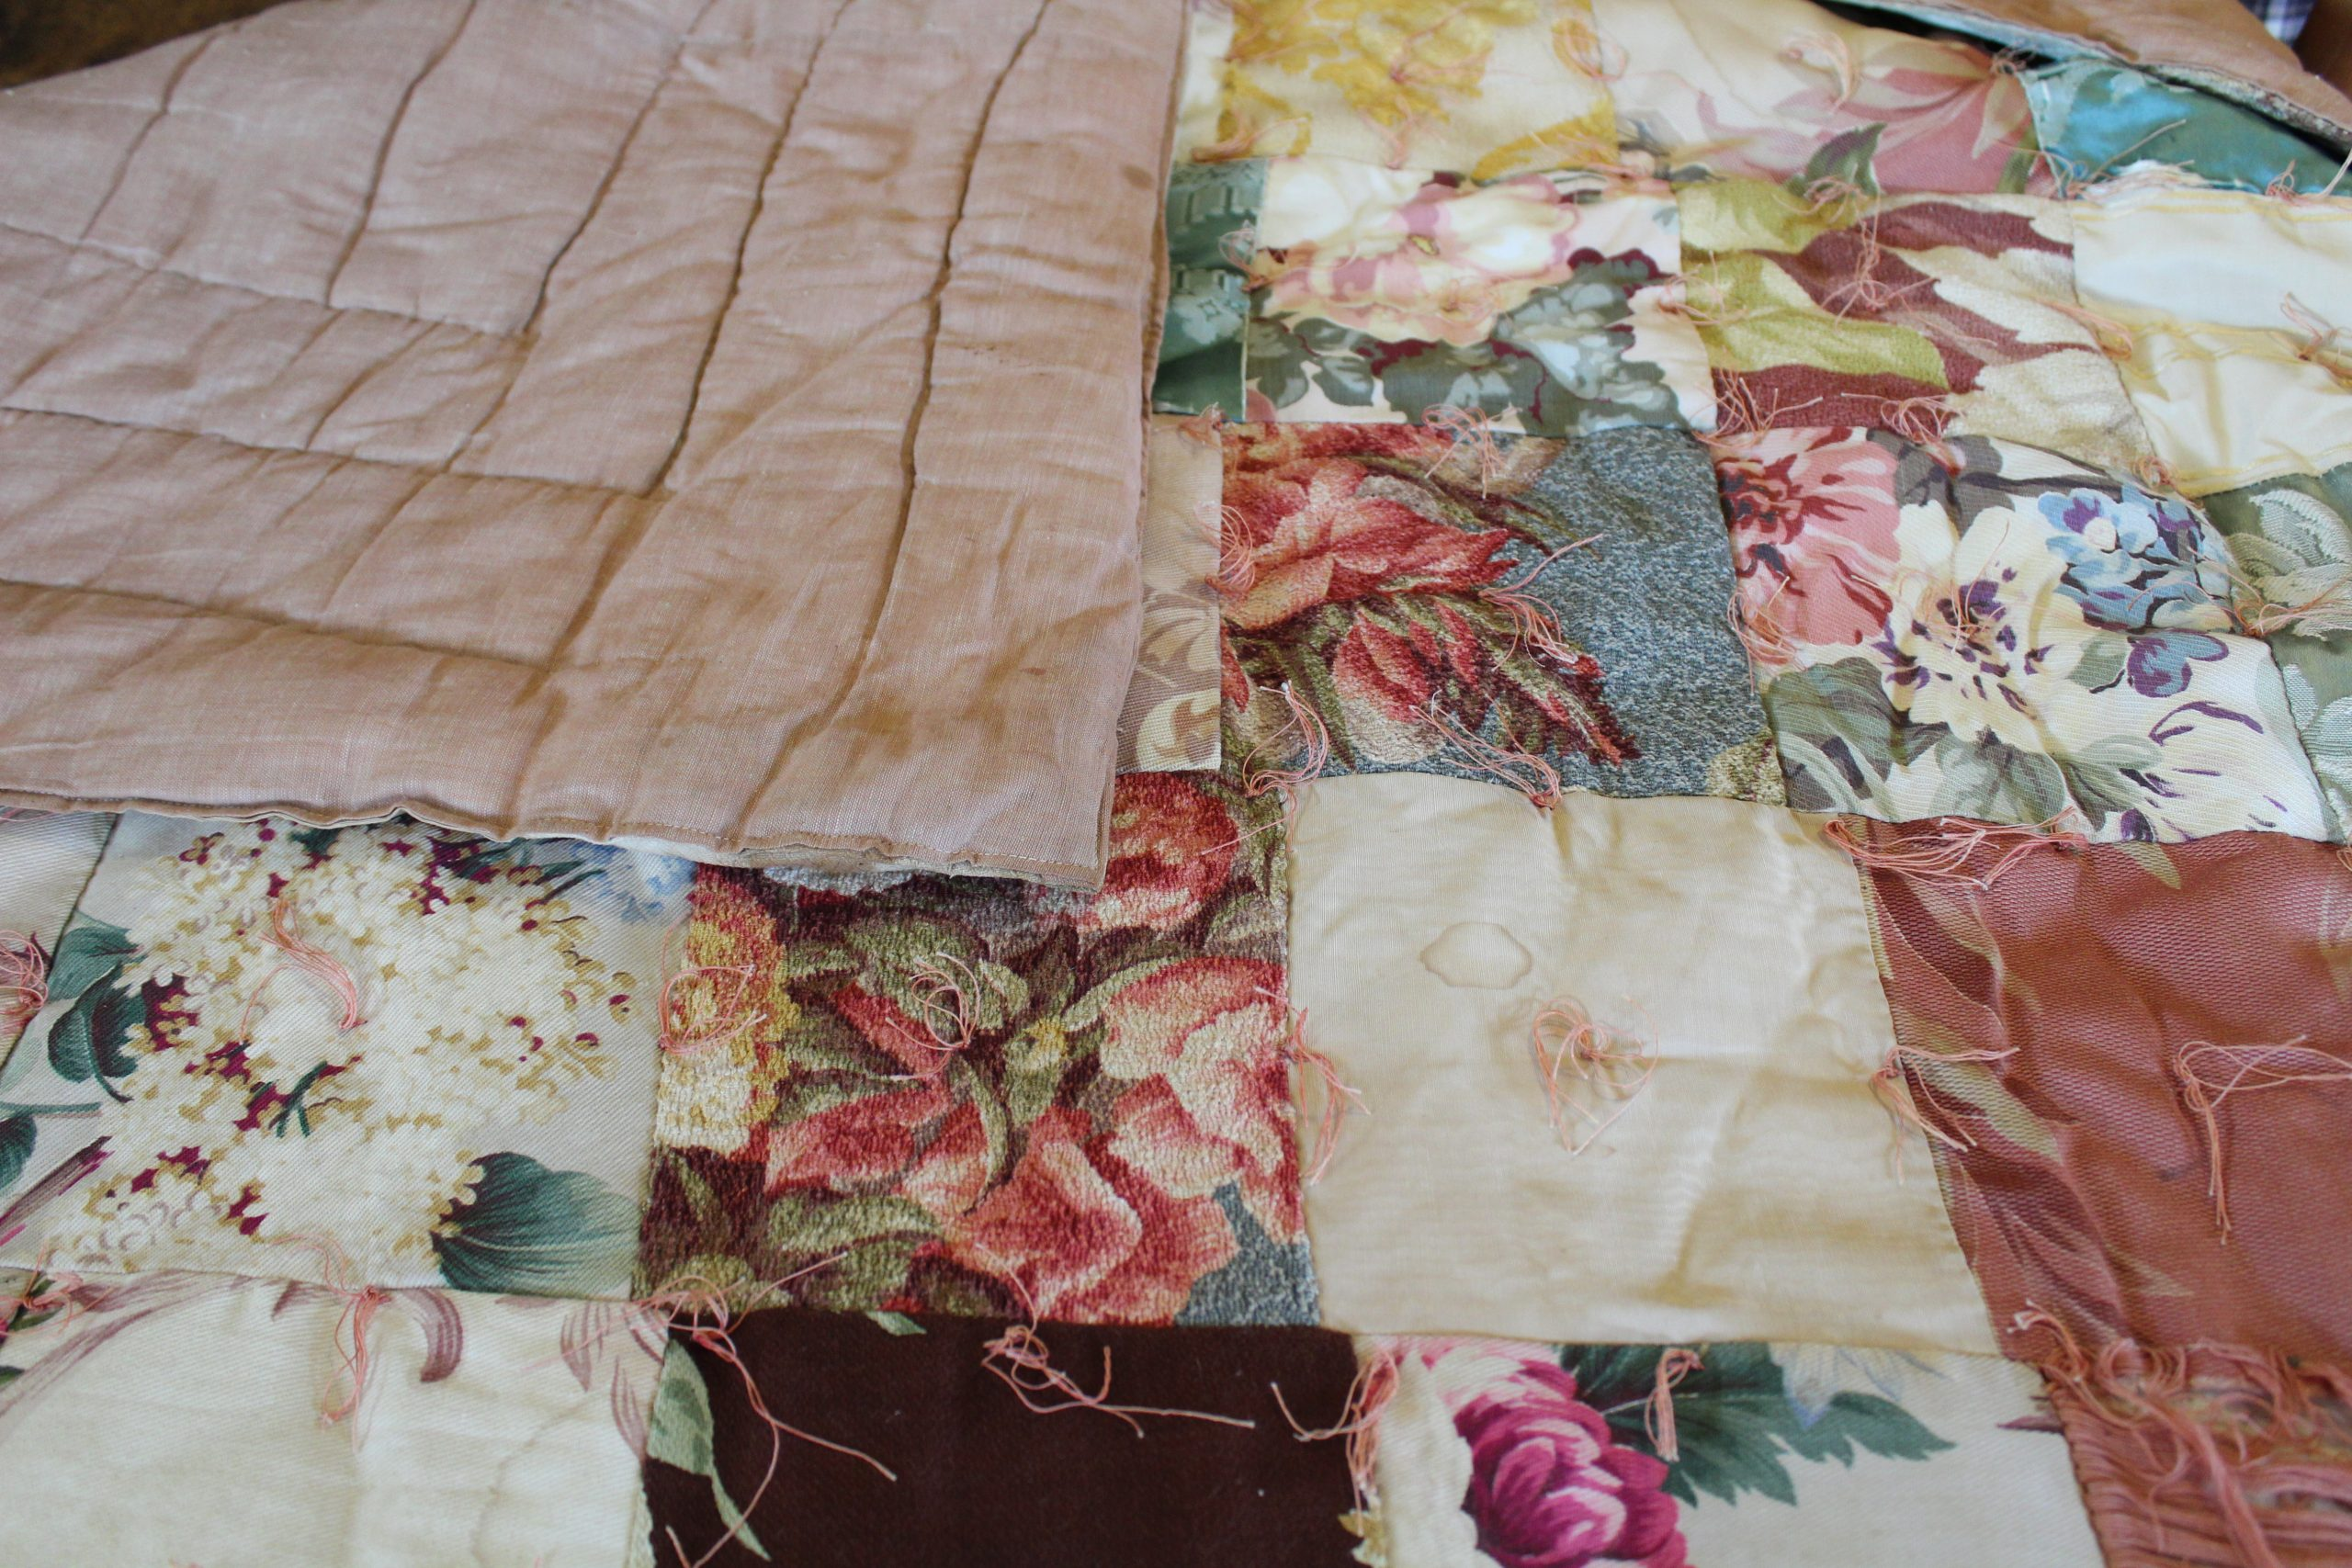 quilt with rose-patterned squares